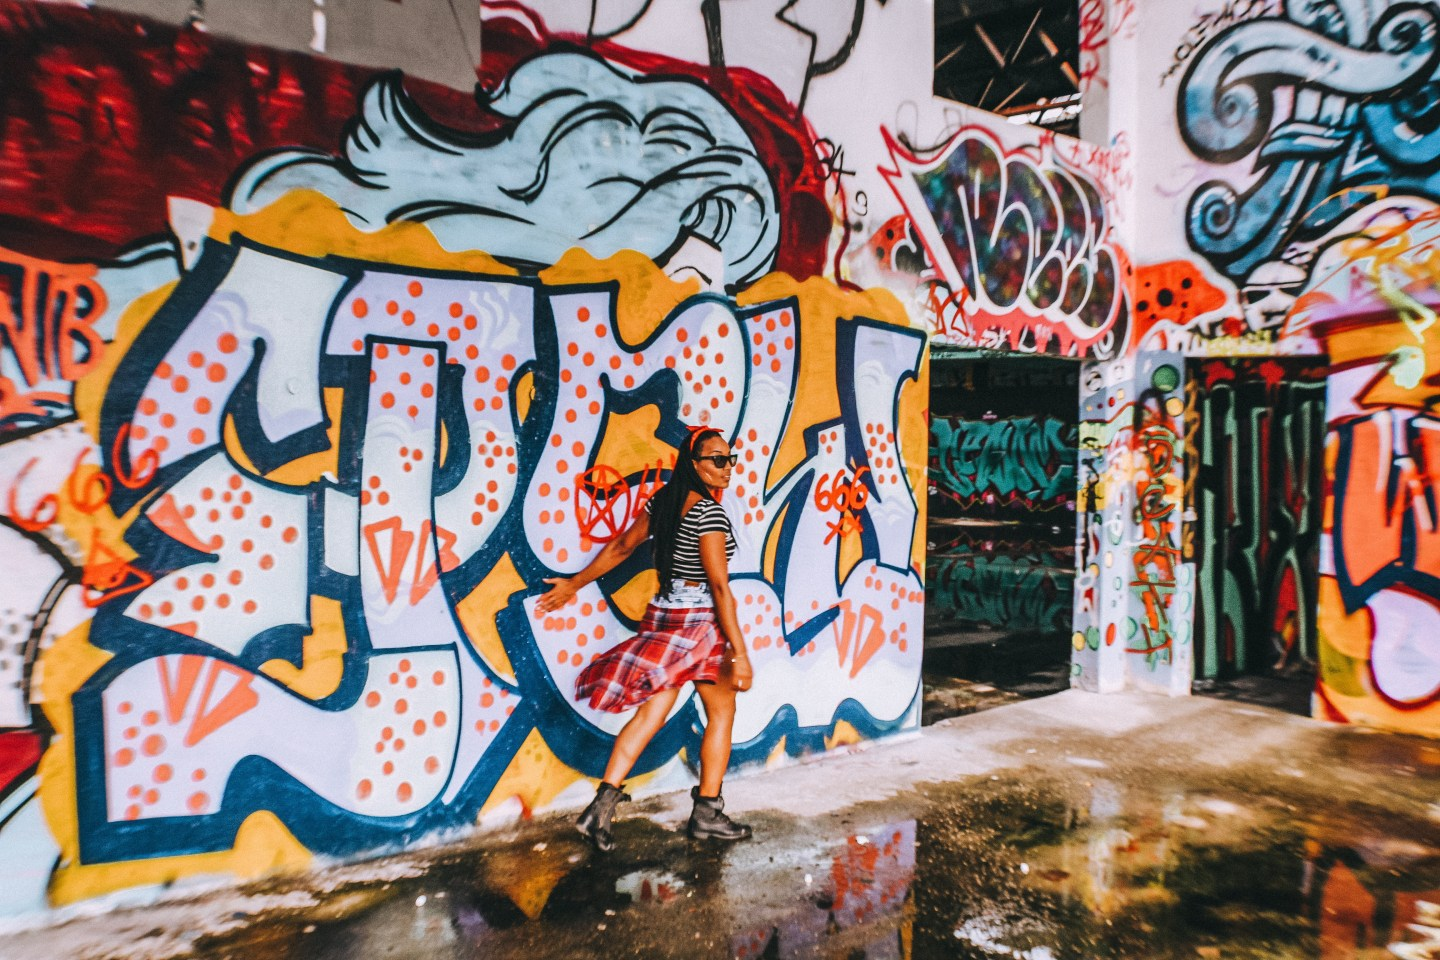 Illustrated by Sade - Woman taking a photo in an abandoned warehouse in Wynwood, Miami, Florida